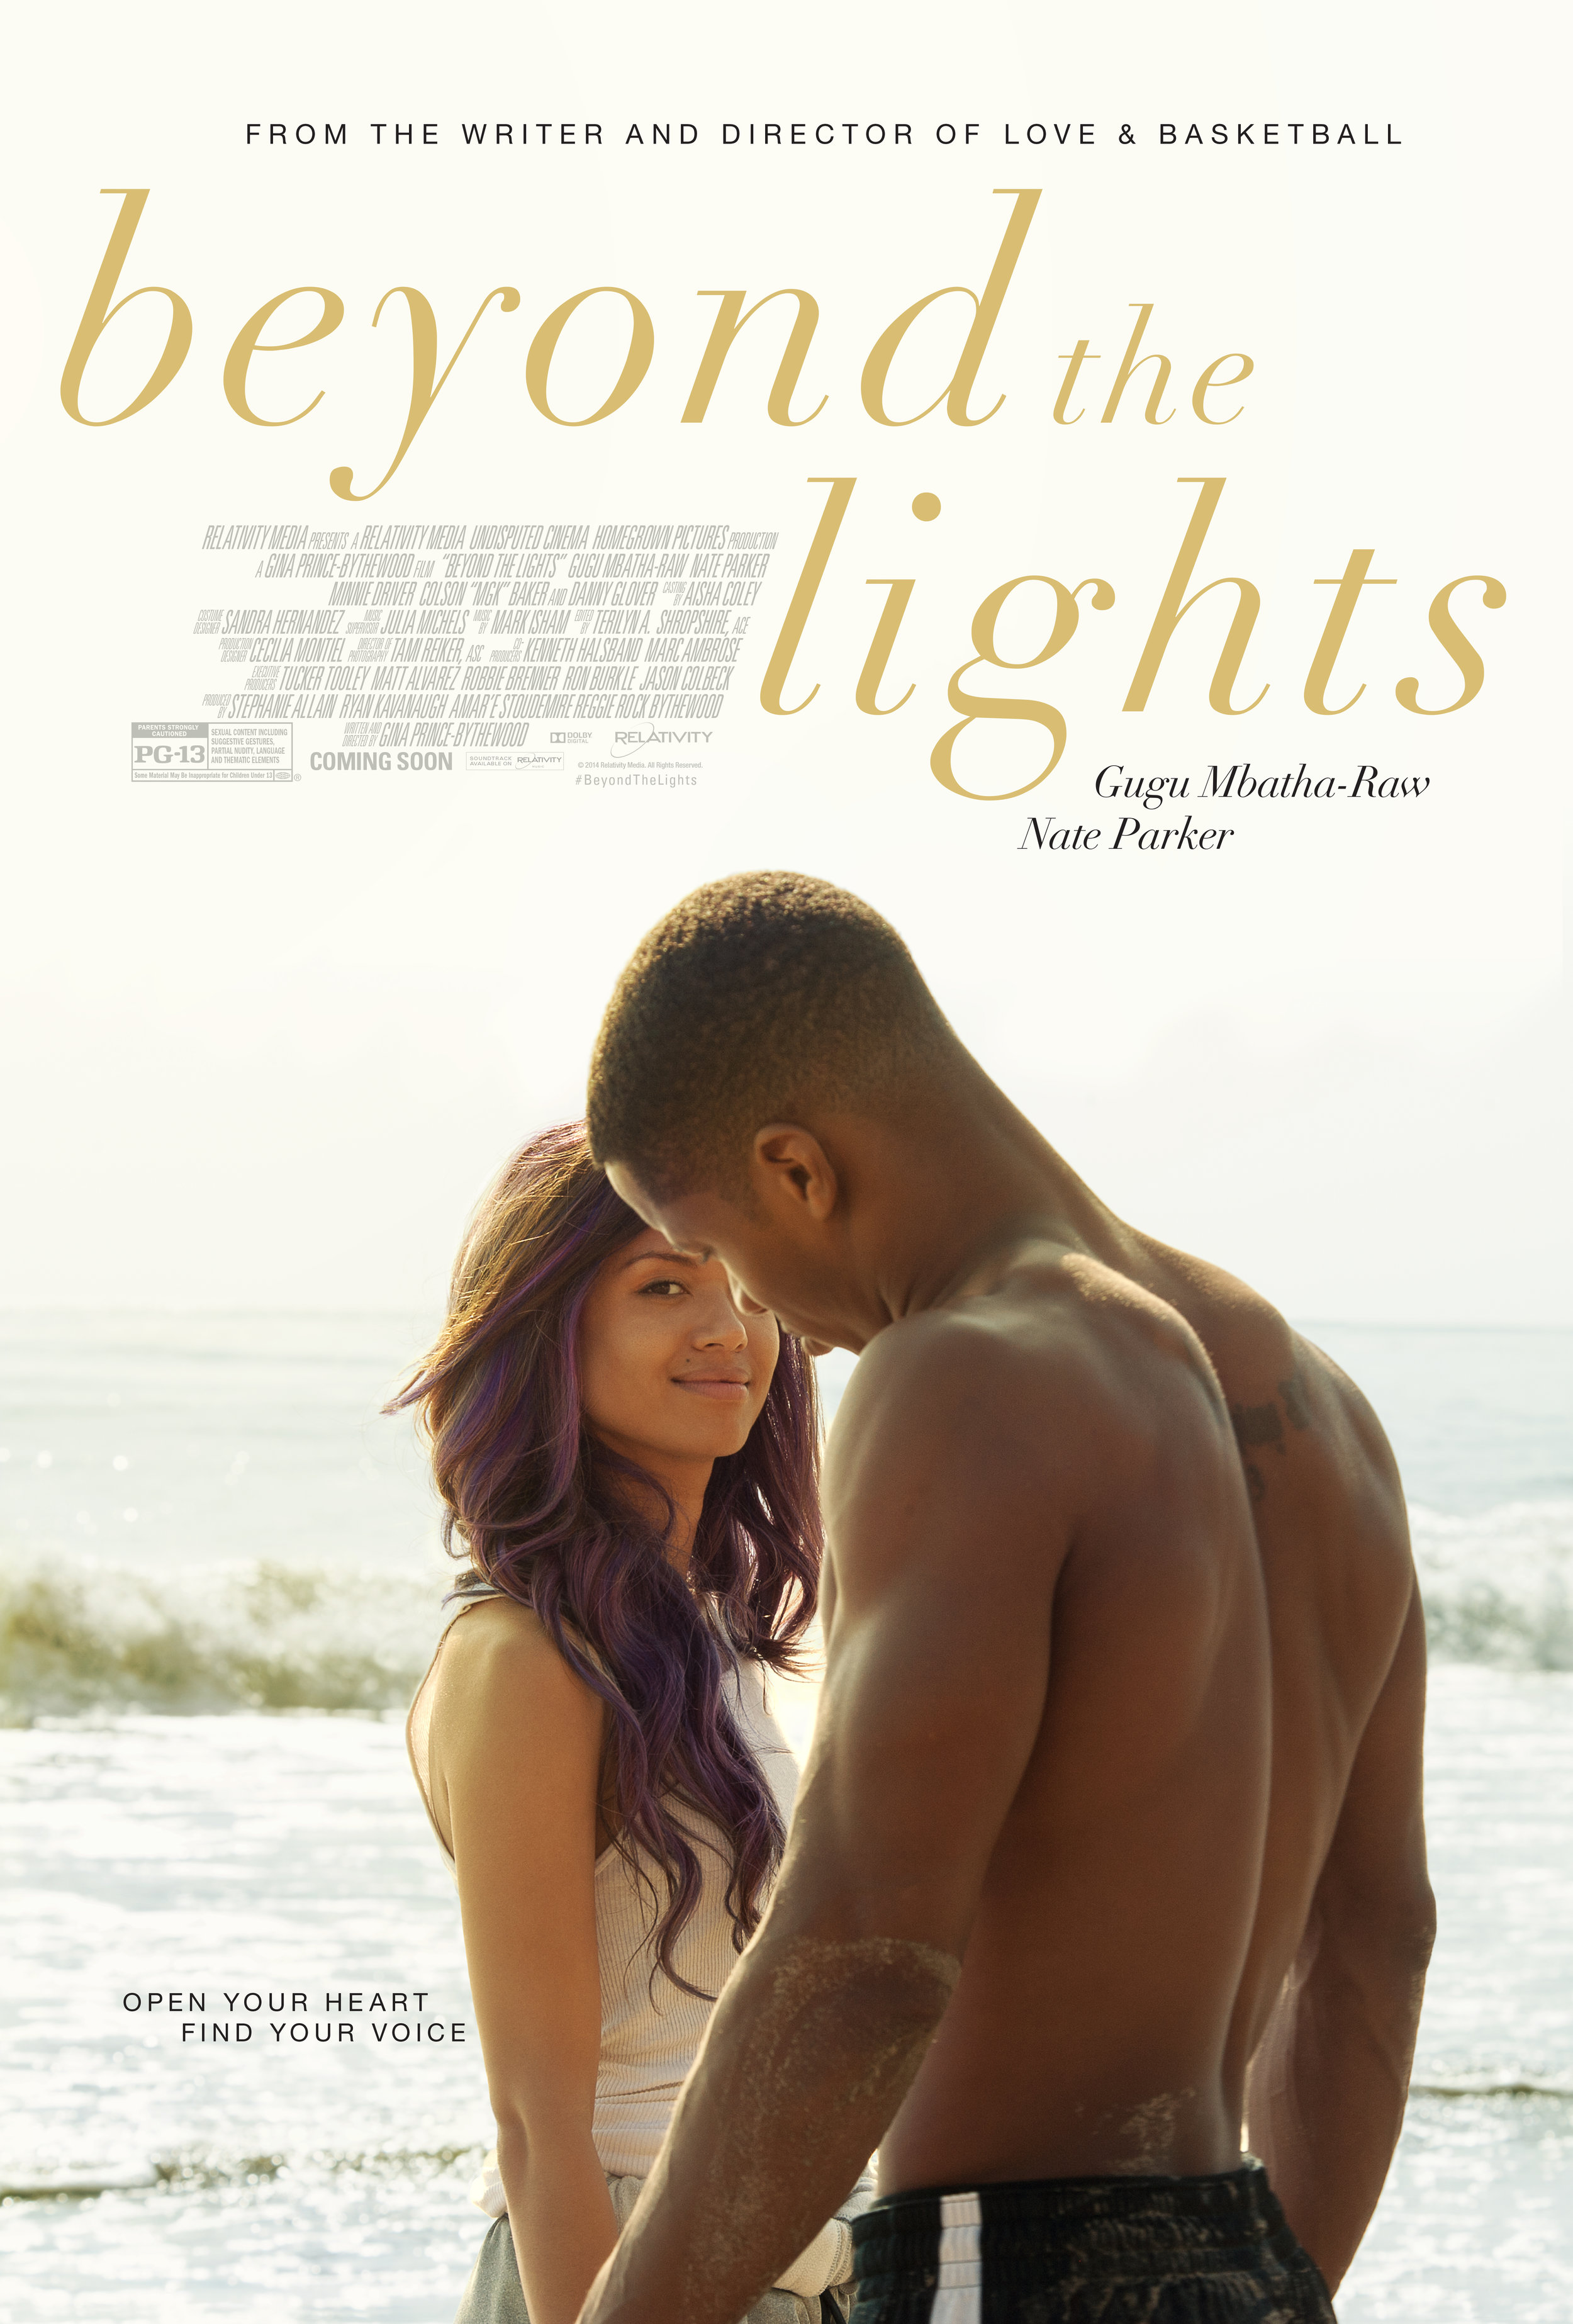 #BeyondTheLights - let go, find your voice and open your heart.